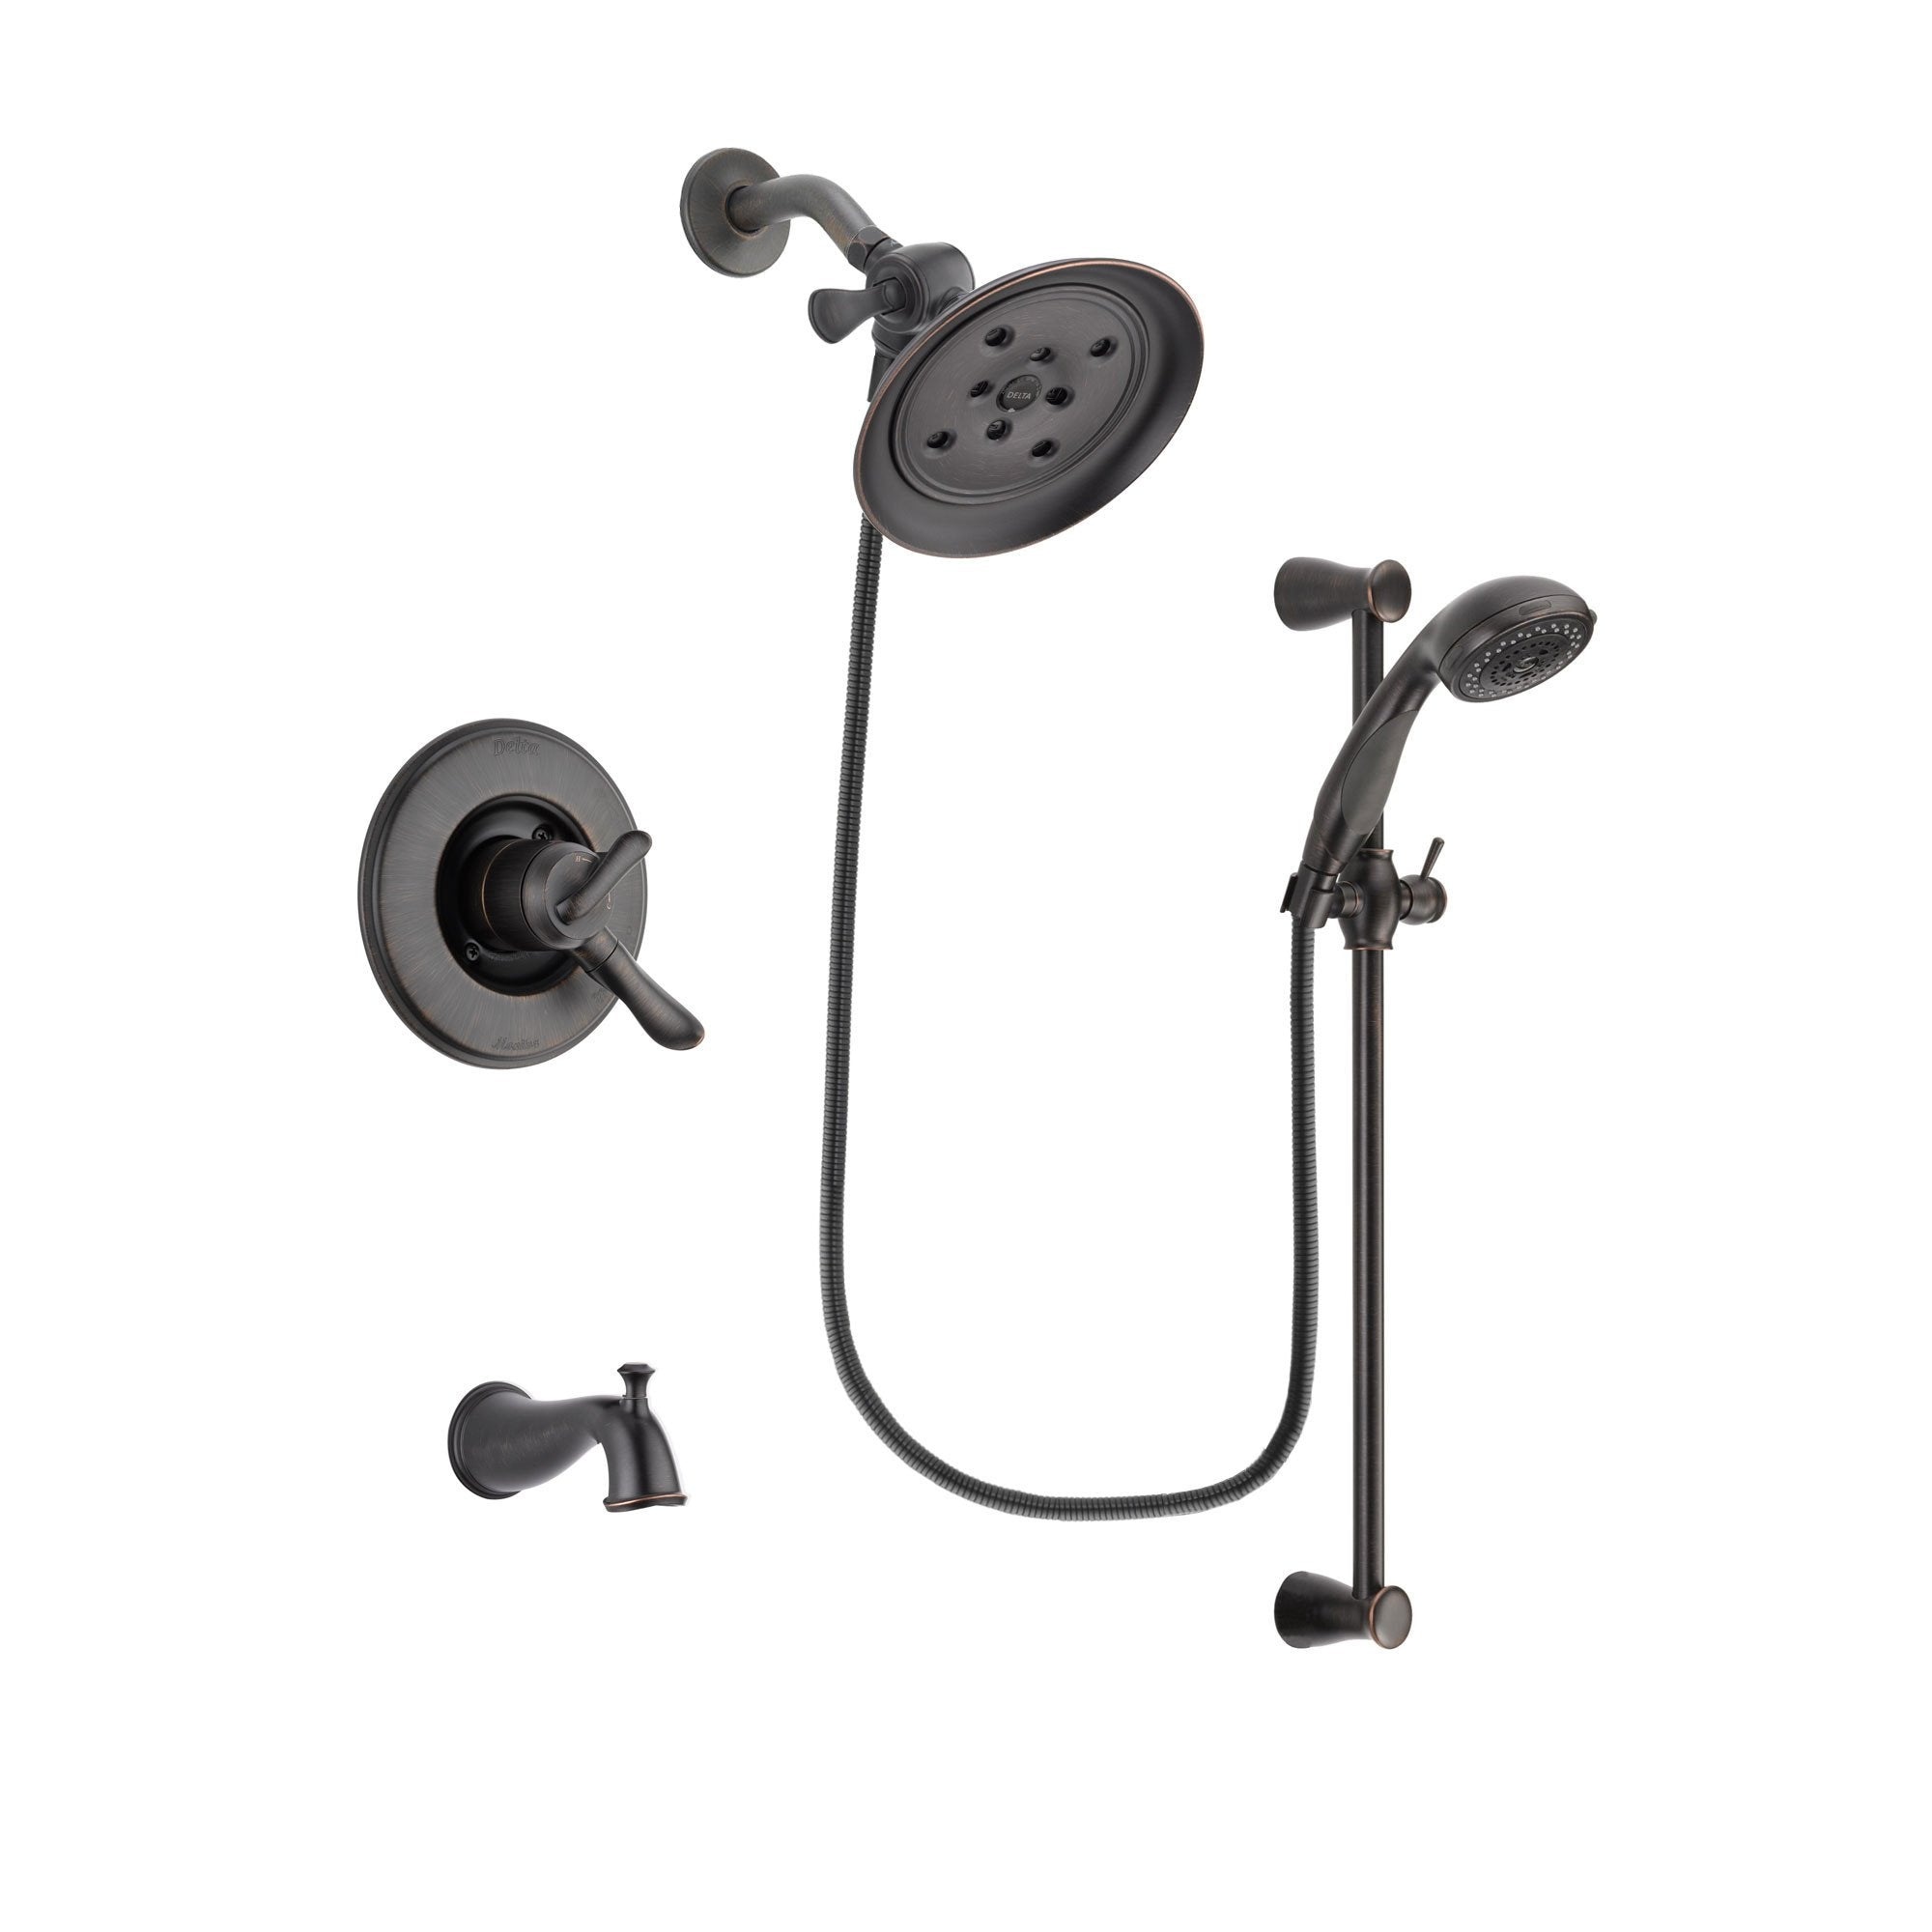 Delta Linden Venetian Bronze Tub and Shower Faucet System w/Hand Shower DSP2707V